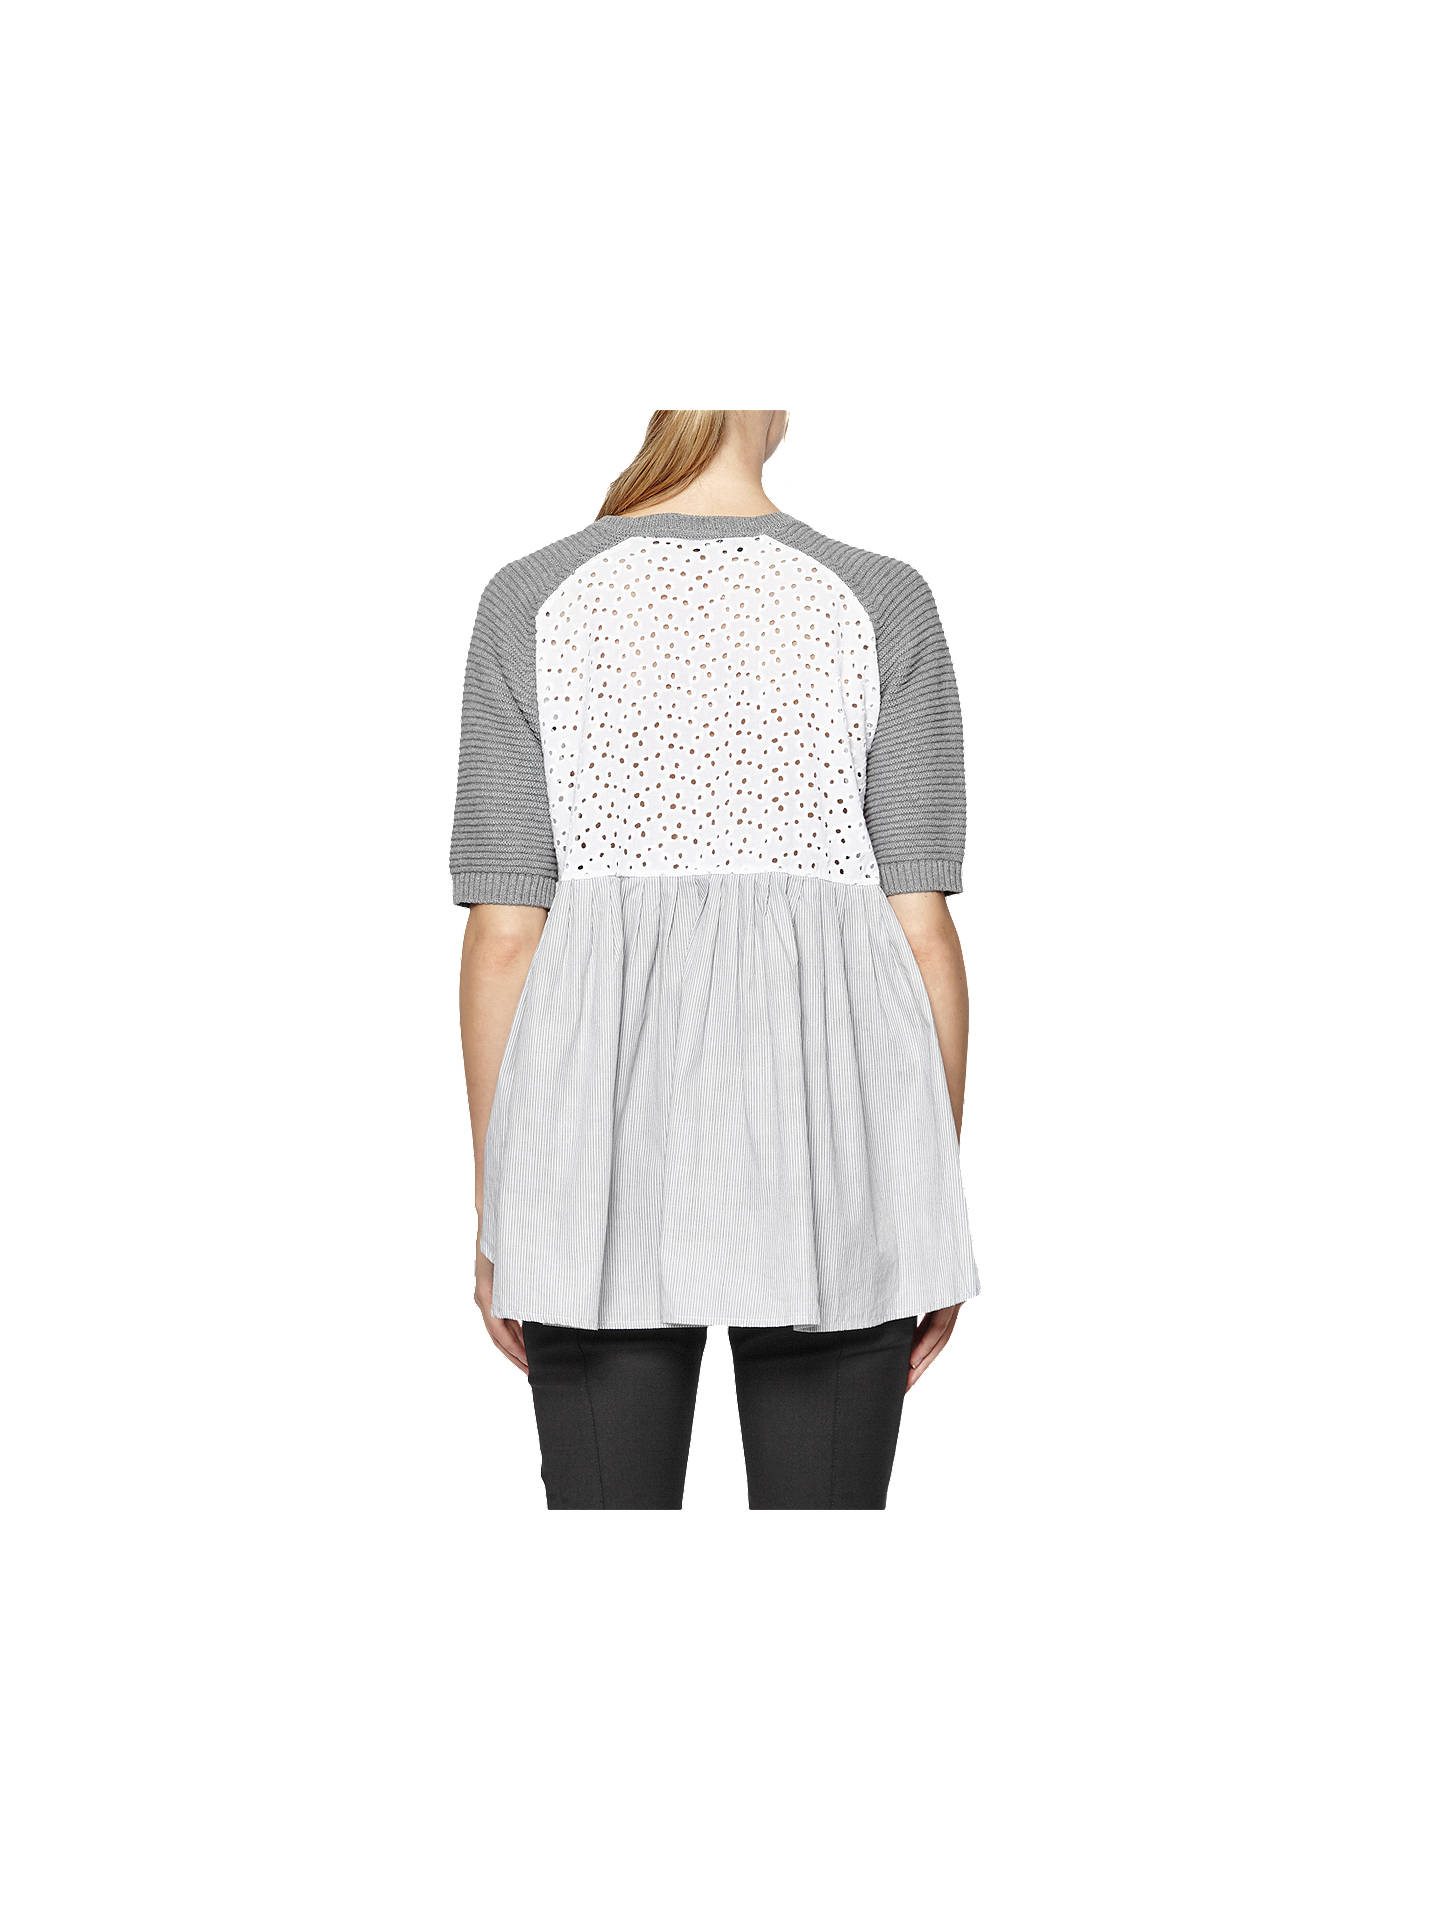 BuyFrench Connection Effie Short Sleeve Textured Jumper, Grey Mel/Multi, XS Online at johnlewis.com